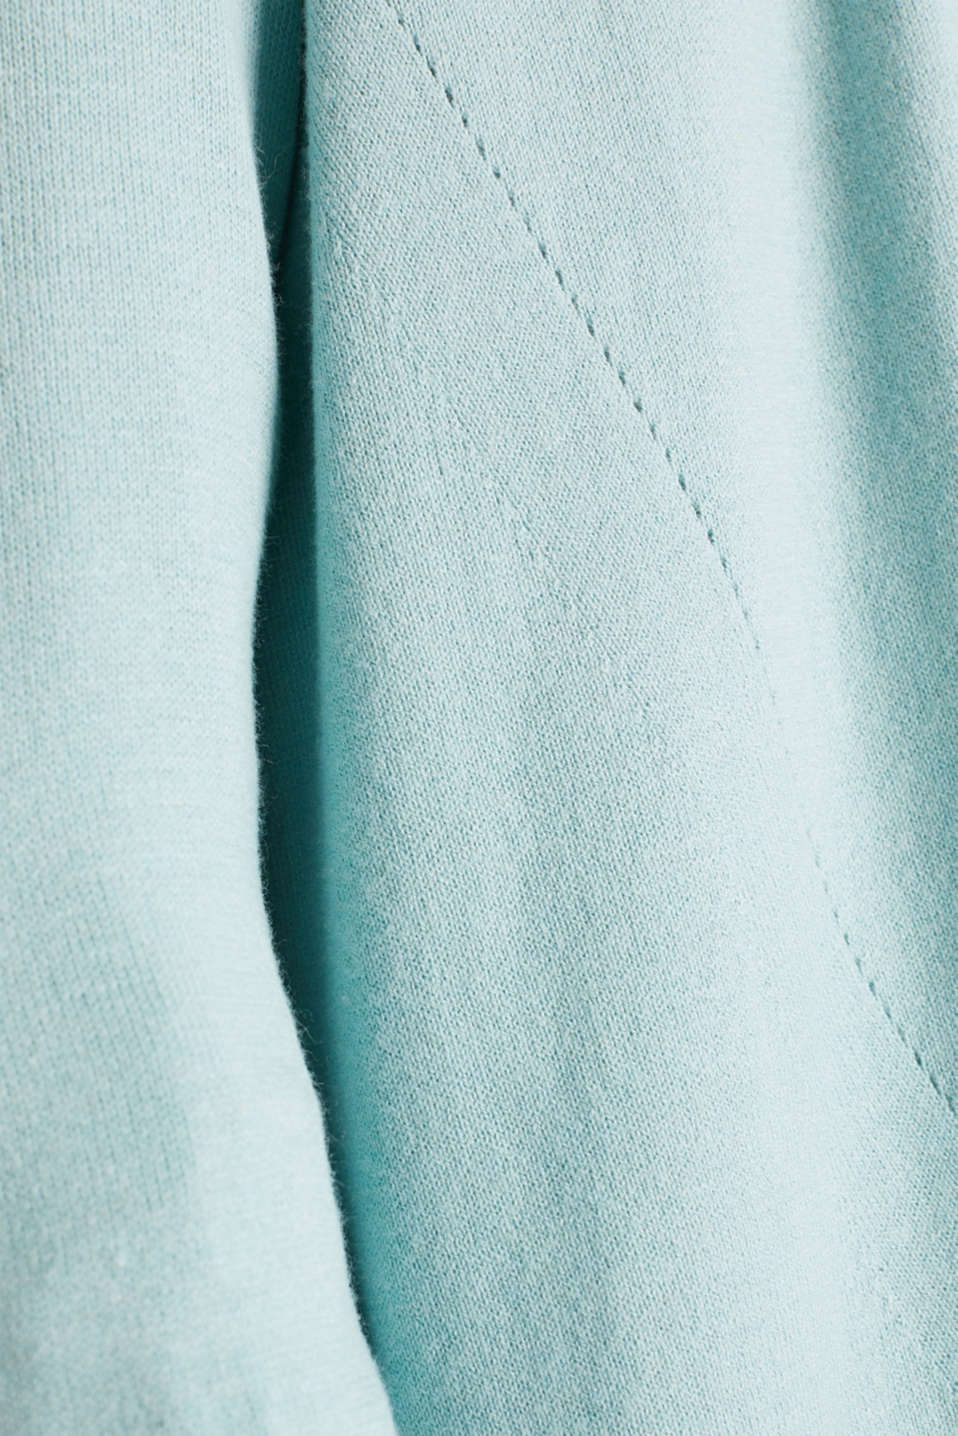 With linen: open cardigan with open-work pattern details, LIGHT AQUA GREEN, detail image number 3